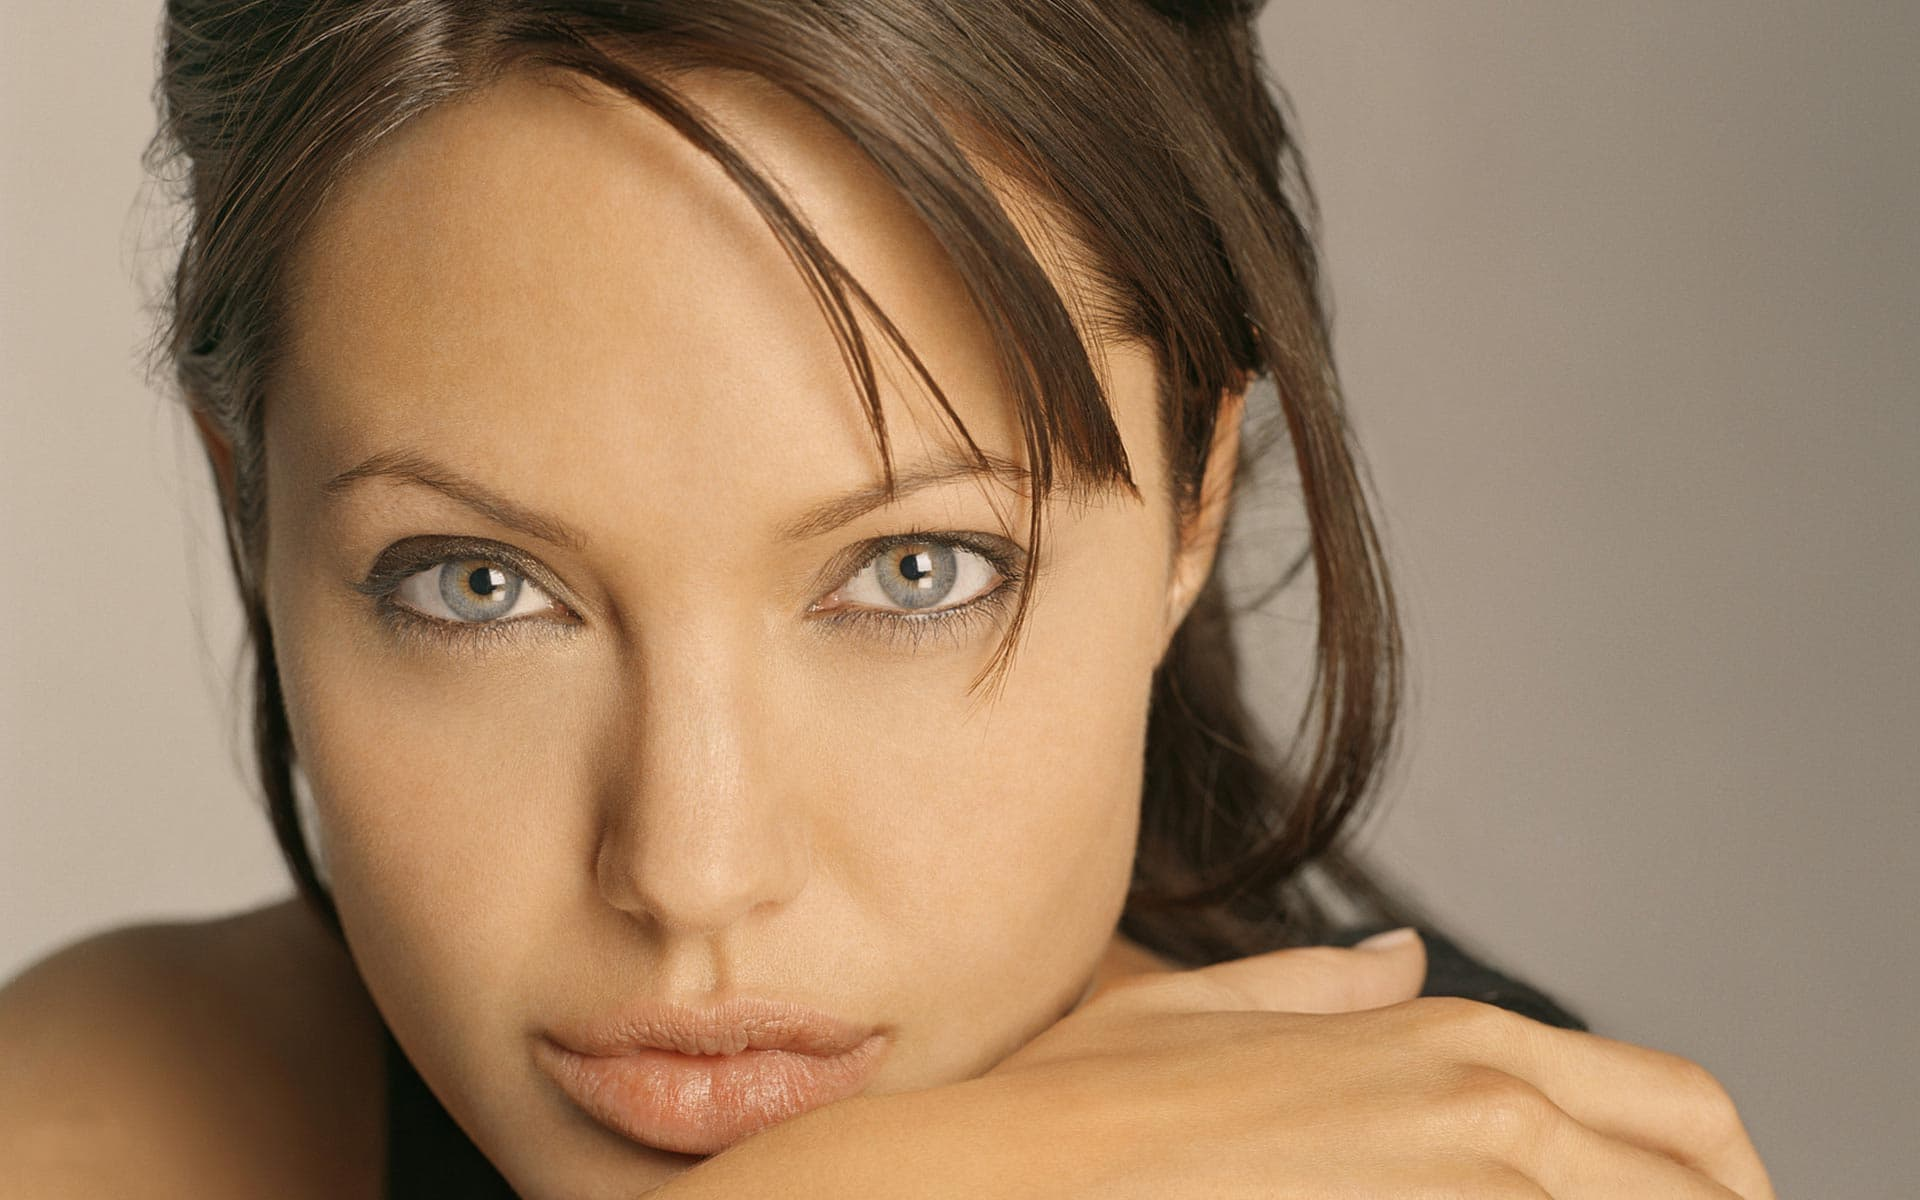 30 Angelina Jolie Wallpapers High Quality Resolution Download